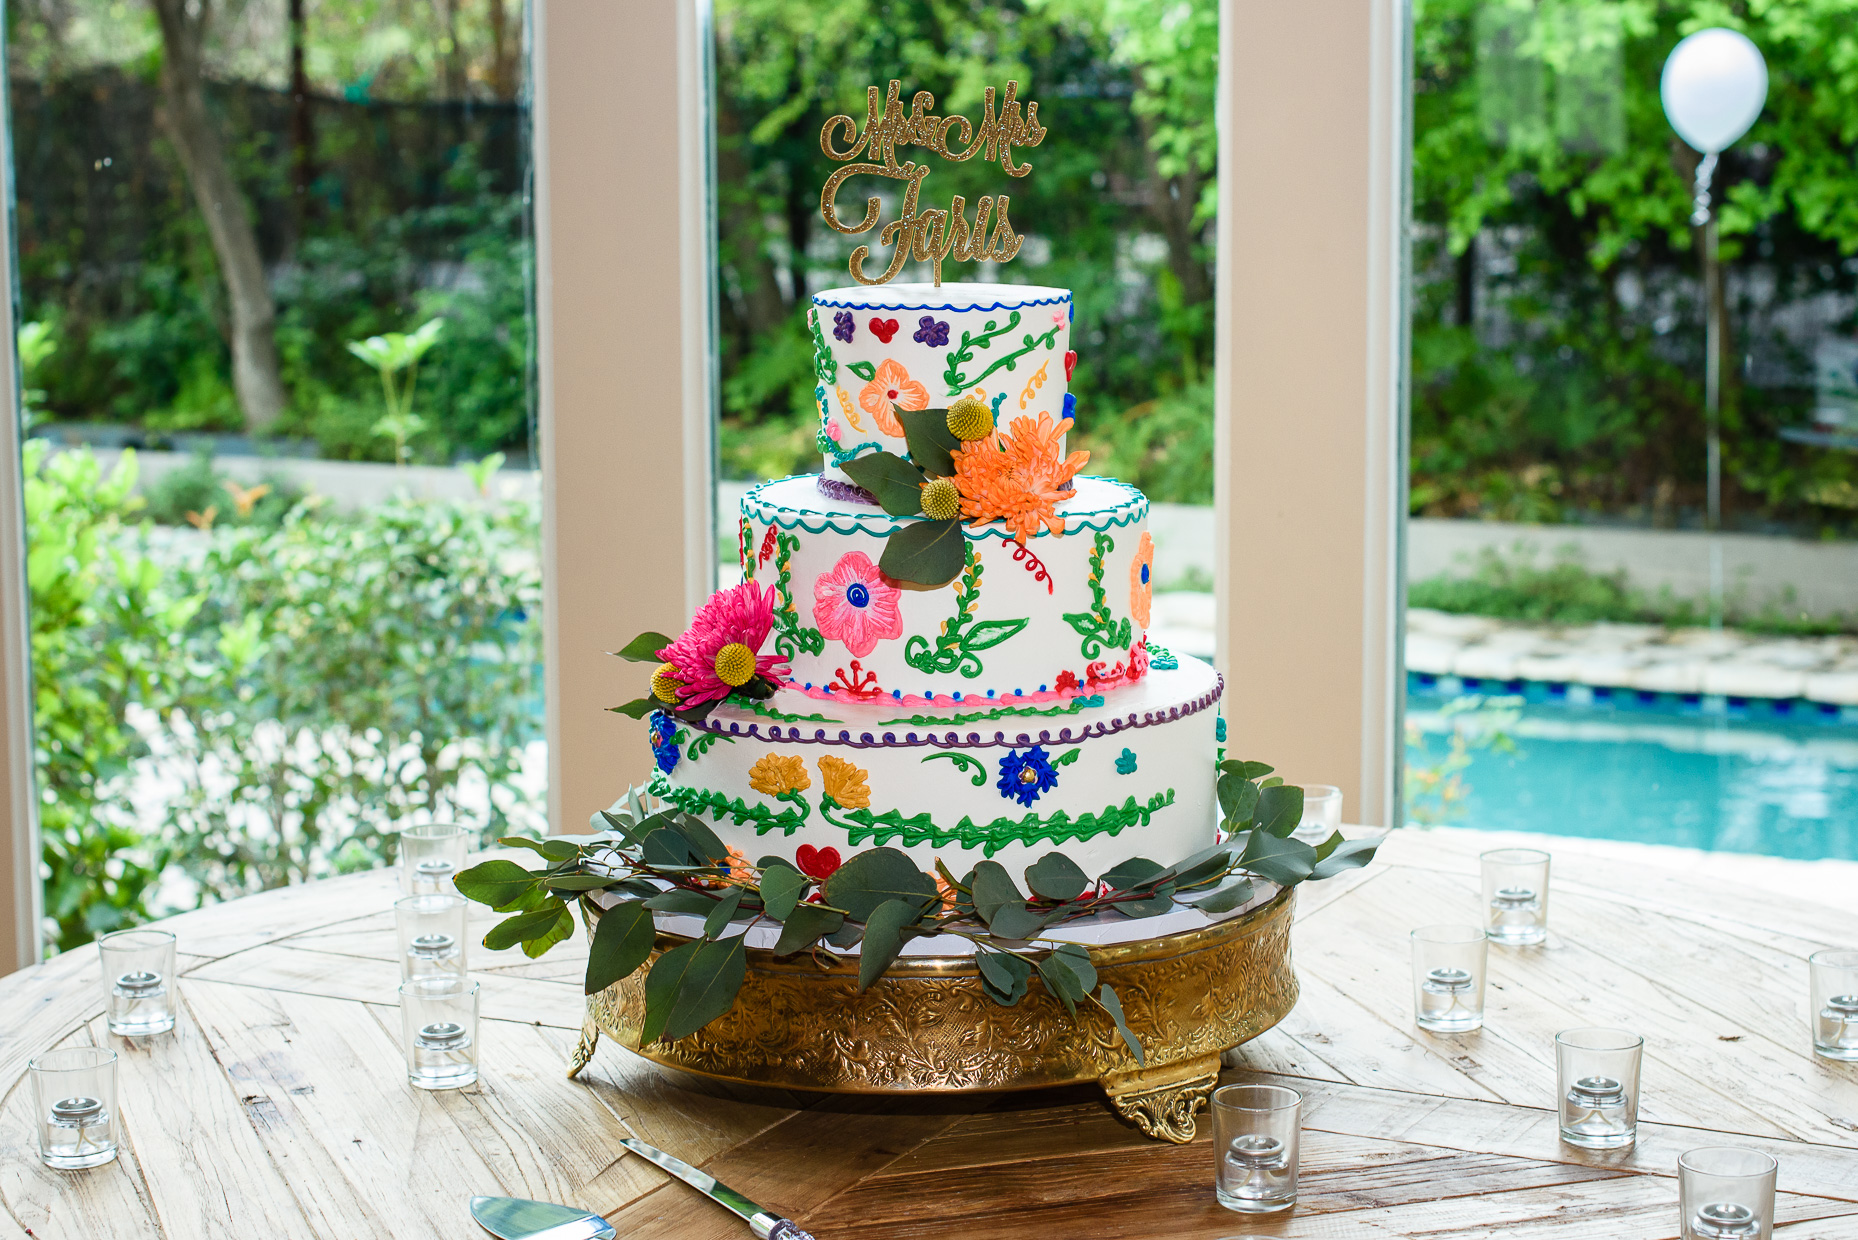 Austin-Wedding-Photographer-cake-flowers-glitter-colorful-tiered-topper